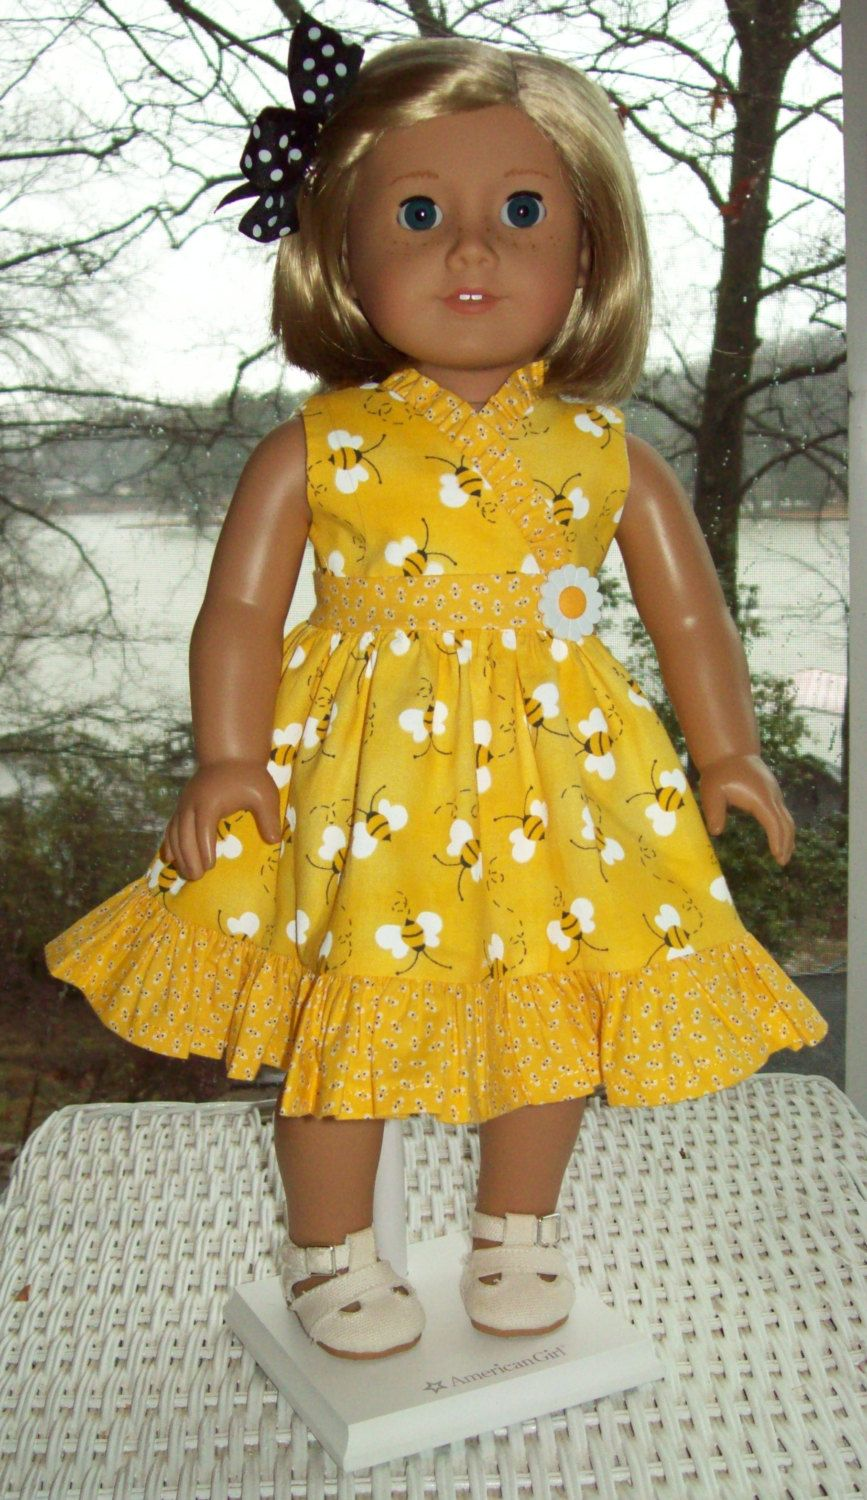 Doll Dress and hair clip for 18 inch doll or American Girl doll.  Honeybee ruffled dress. by ASewSewShop on Etsy